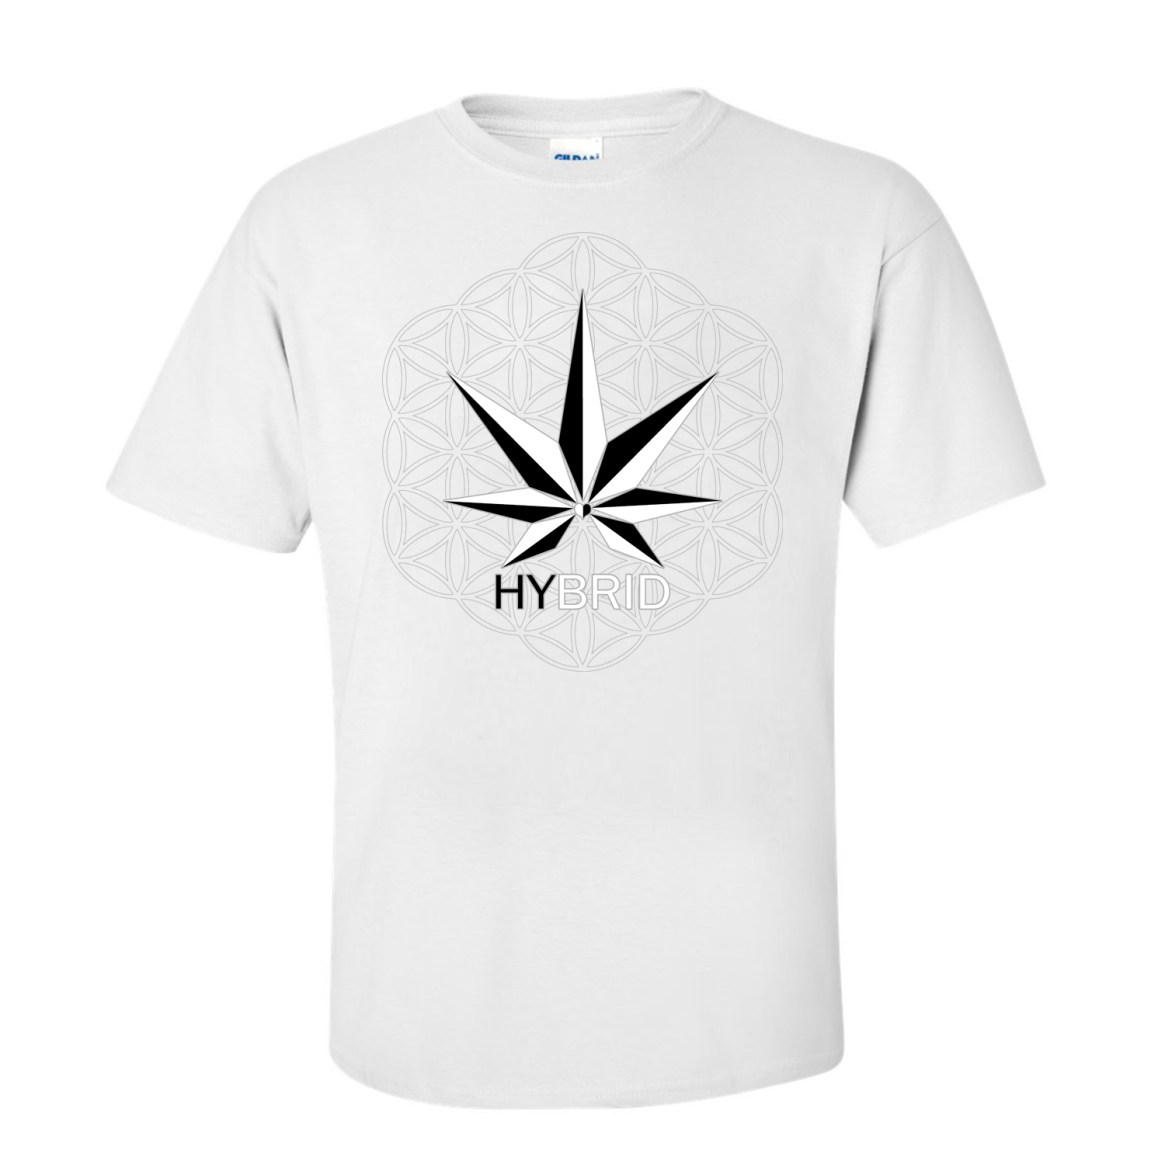 h3mp shirts_HYBRID_WHITE